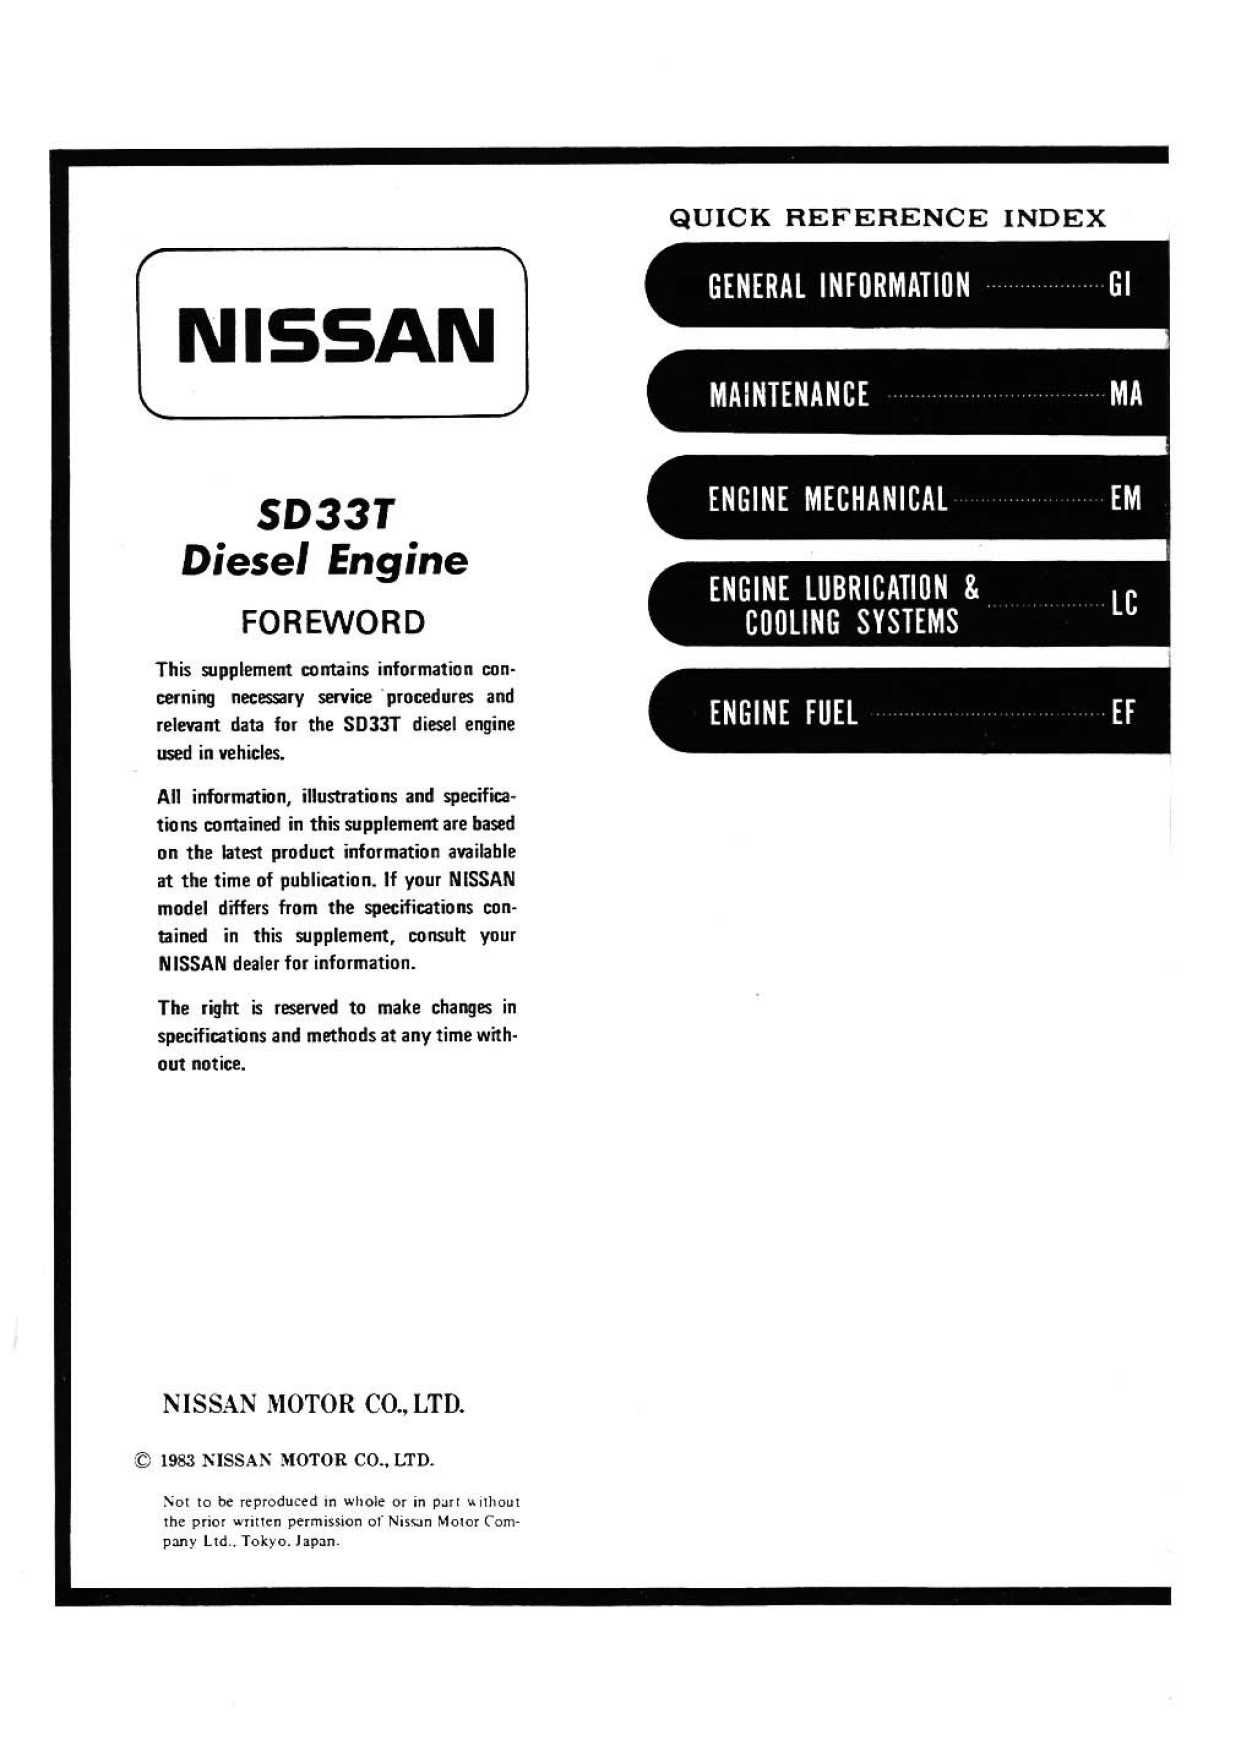 sd series diesel engine service manual